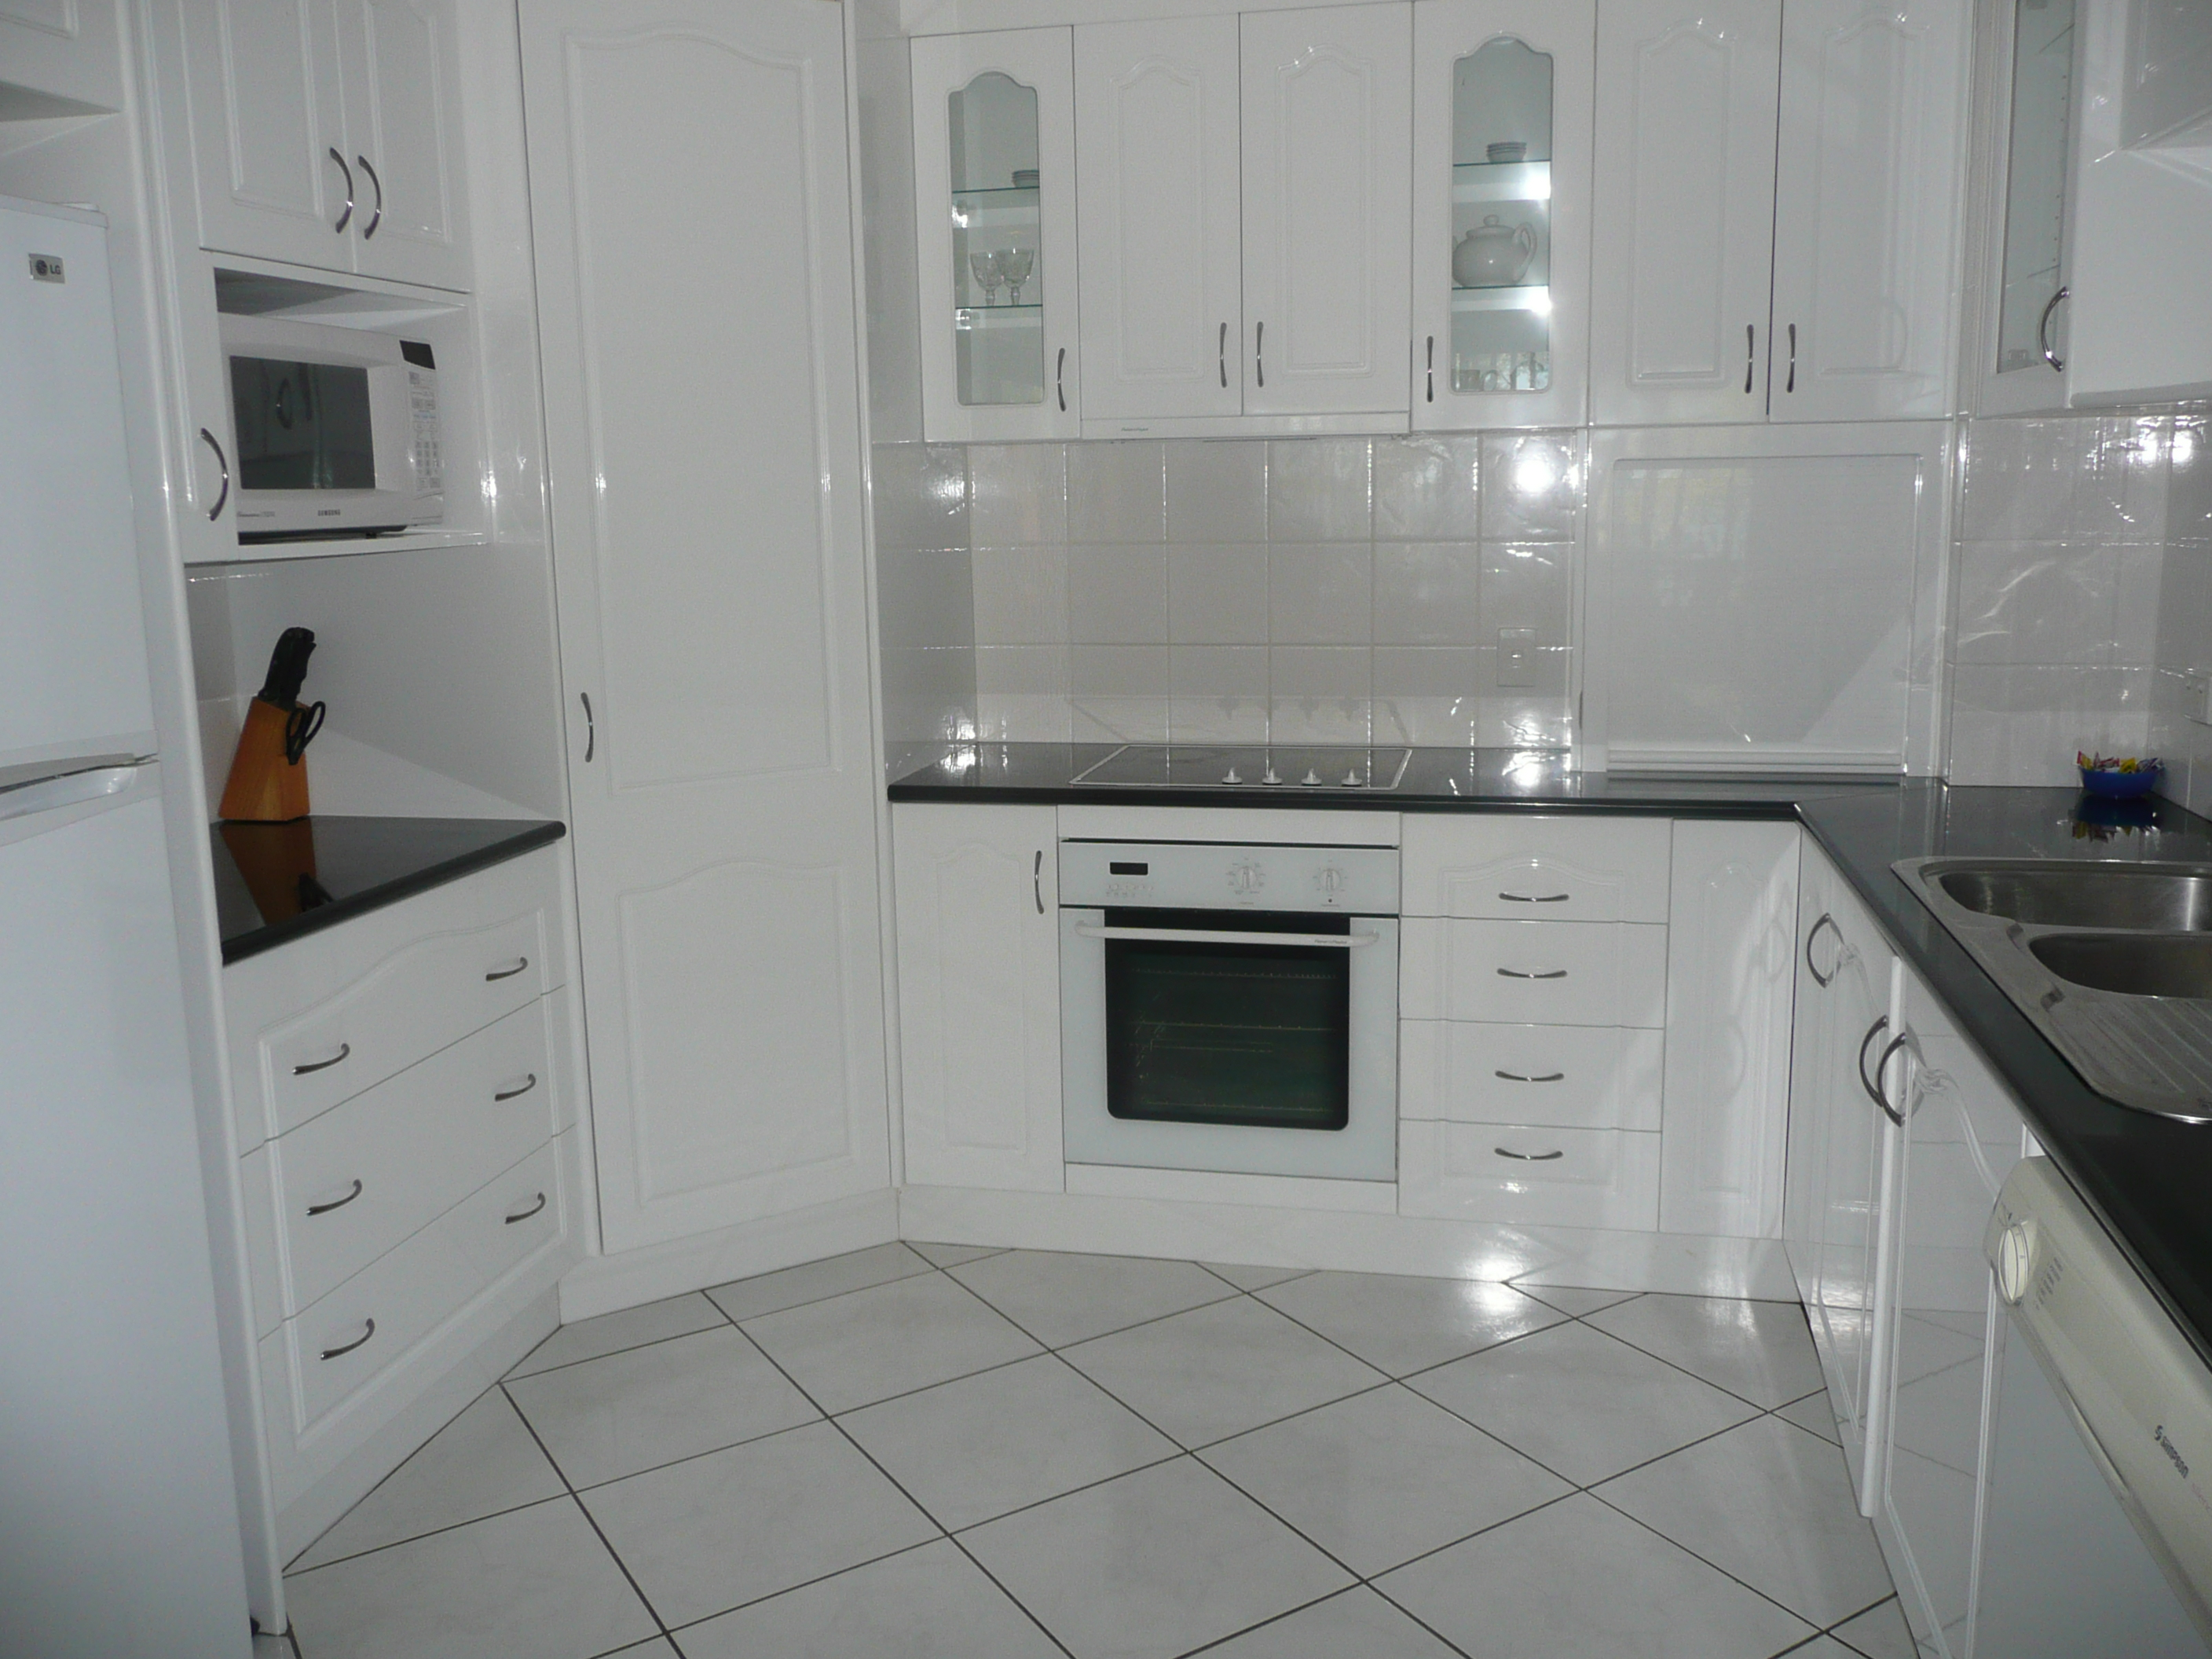 Accomodation Bribie Island The Gums Anchorage Holiday And Permanent Unit 23 Kitchen Gums Anchorage